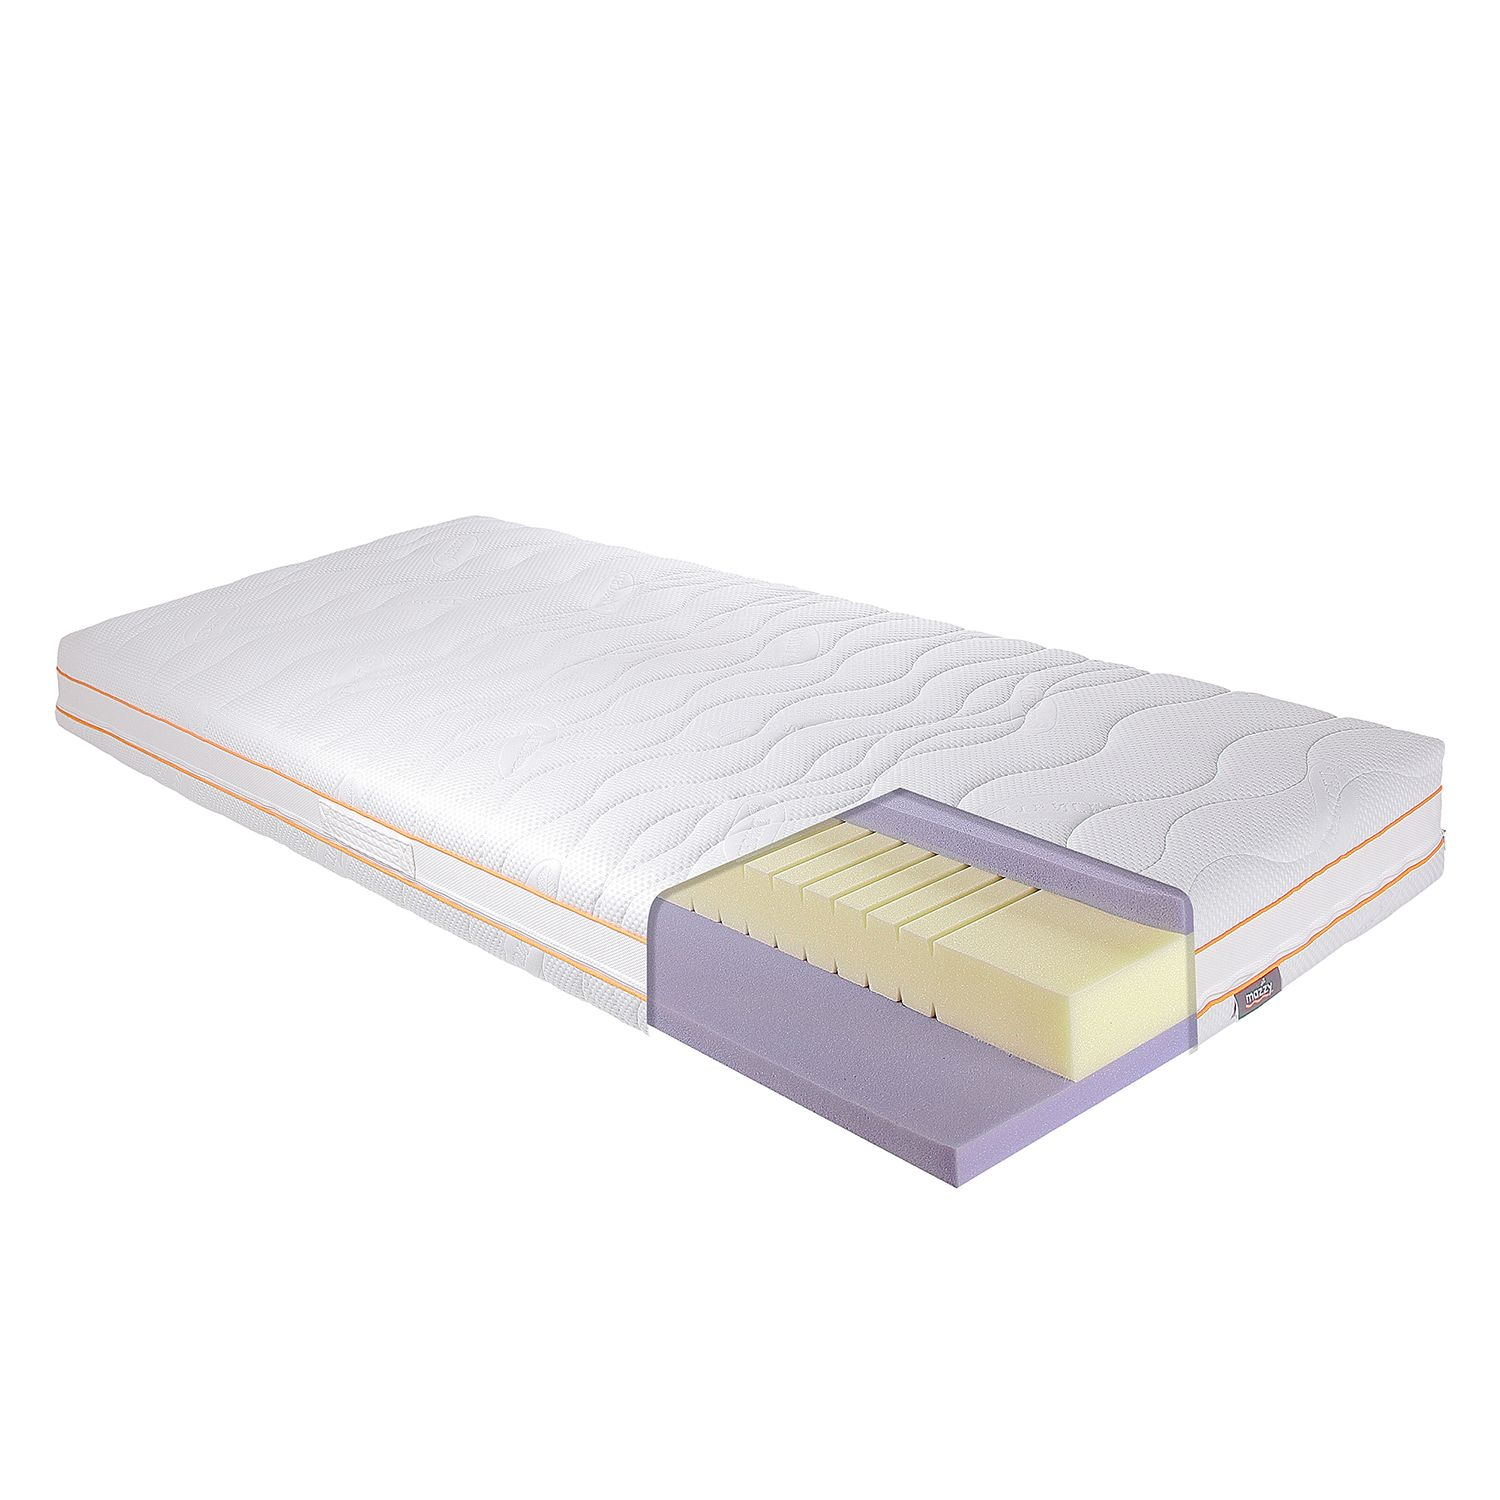 Matelas en mousse confort gel 7 zones de